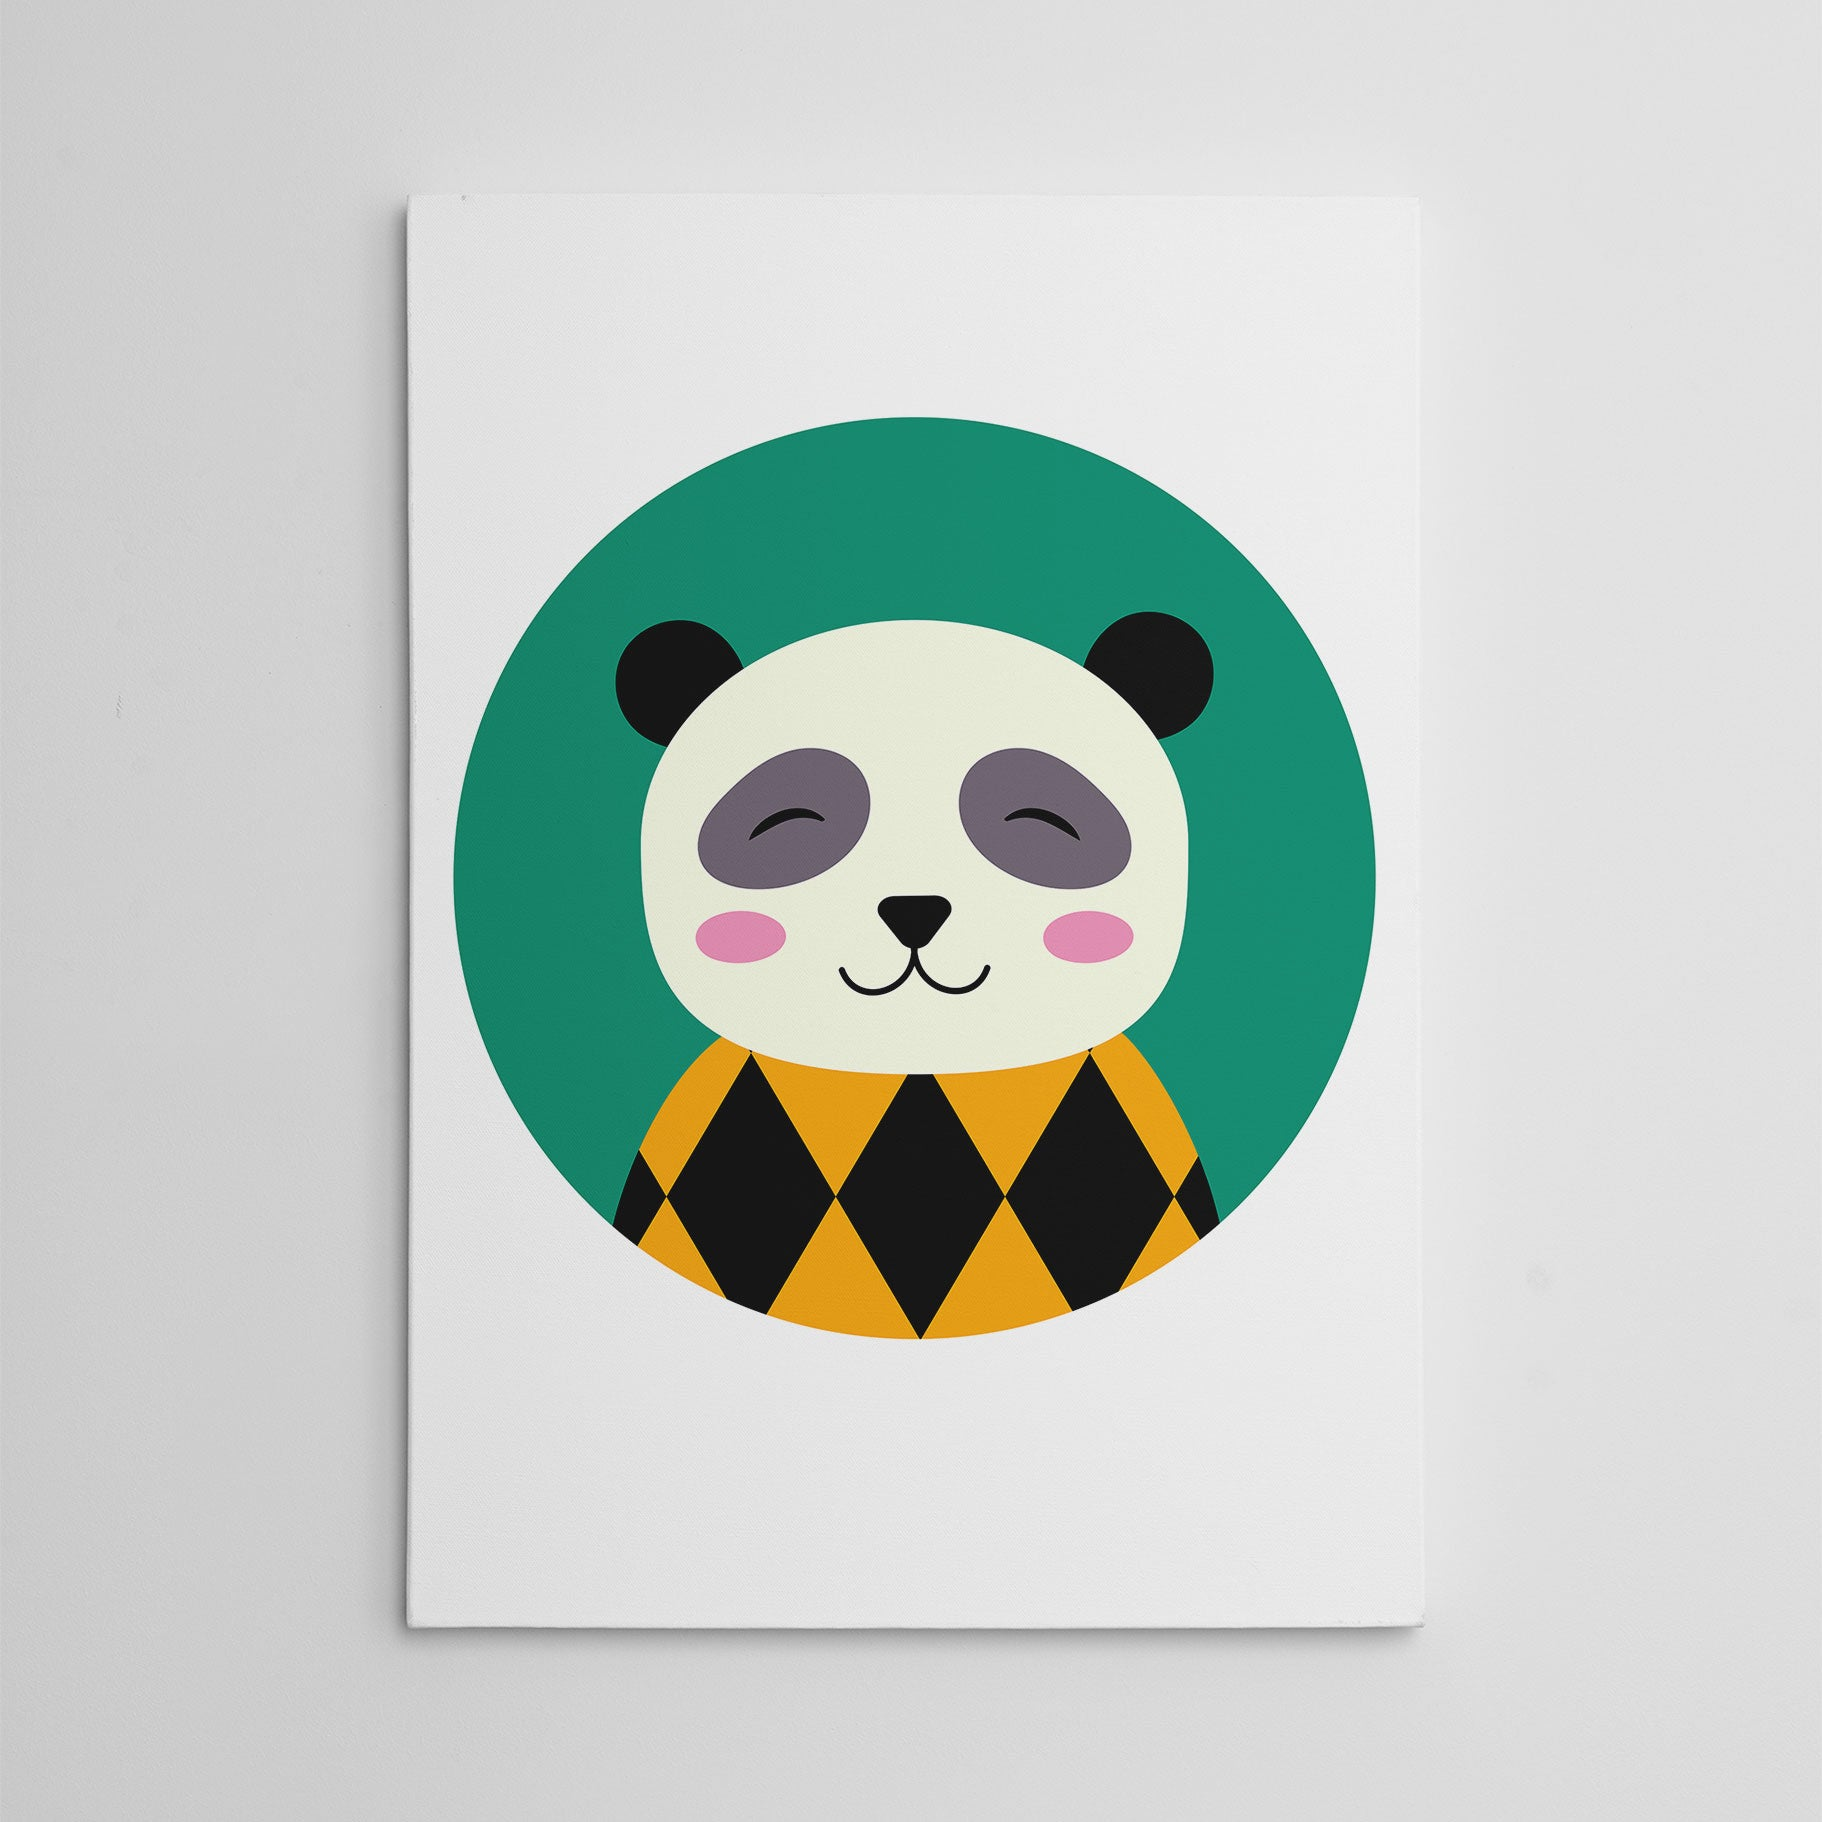 Nursery canvas print with a smiley panda in a green circle.